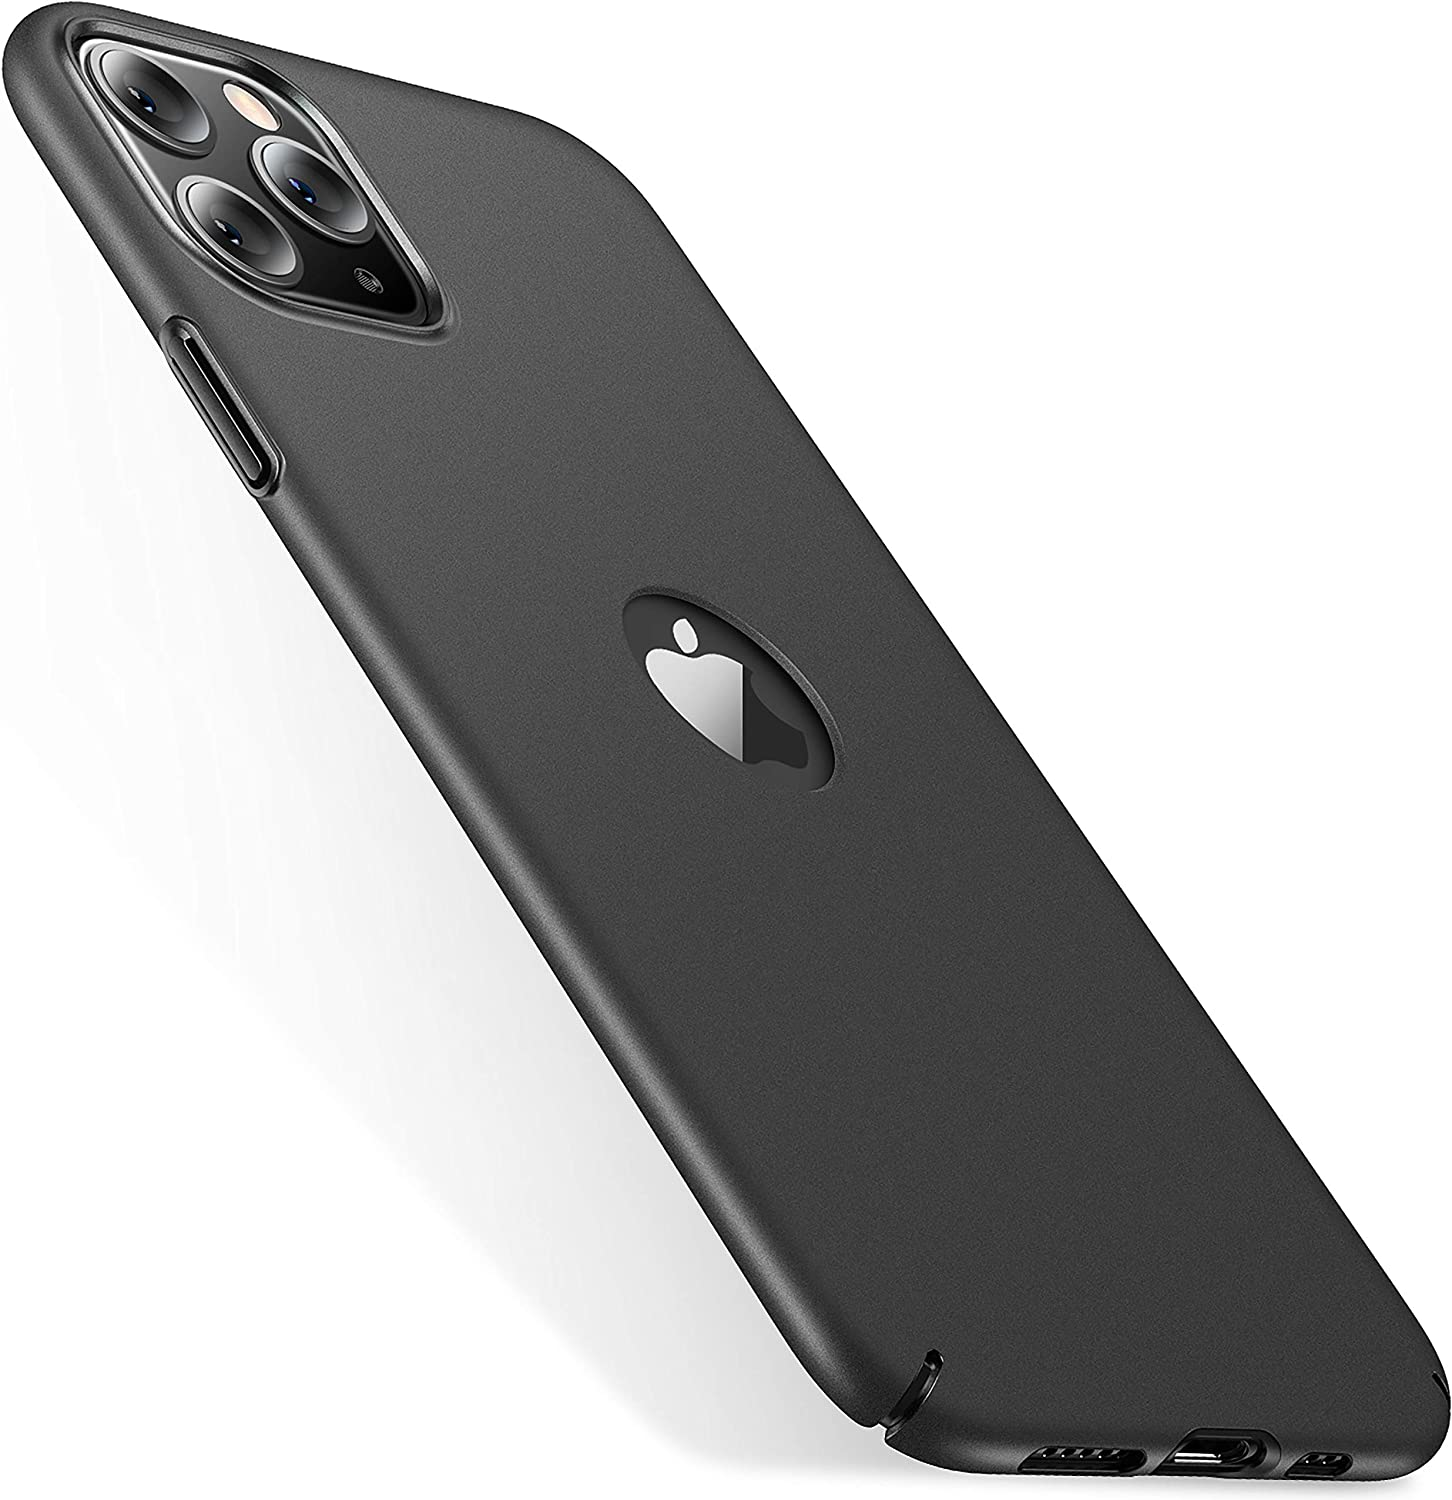 CASEKOO Logo Visible Compatible with iPhone 11 Pro Max Case, Upgraded [Slim Fit] Ultra Thin Hard Plastic Phone Cases, Durable Protective Cover for iPhone 11 Pro Max 6.5-inch 2019, Black